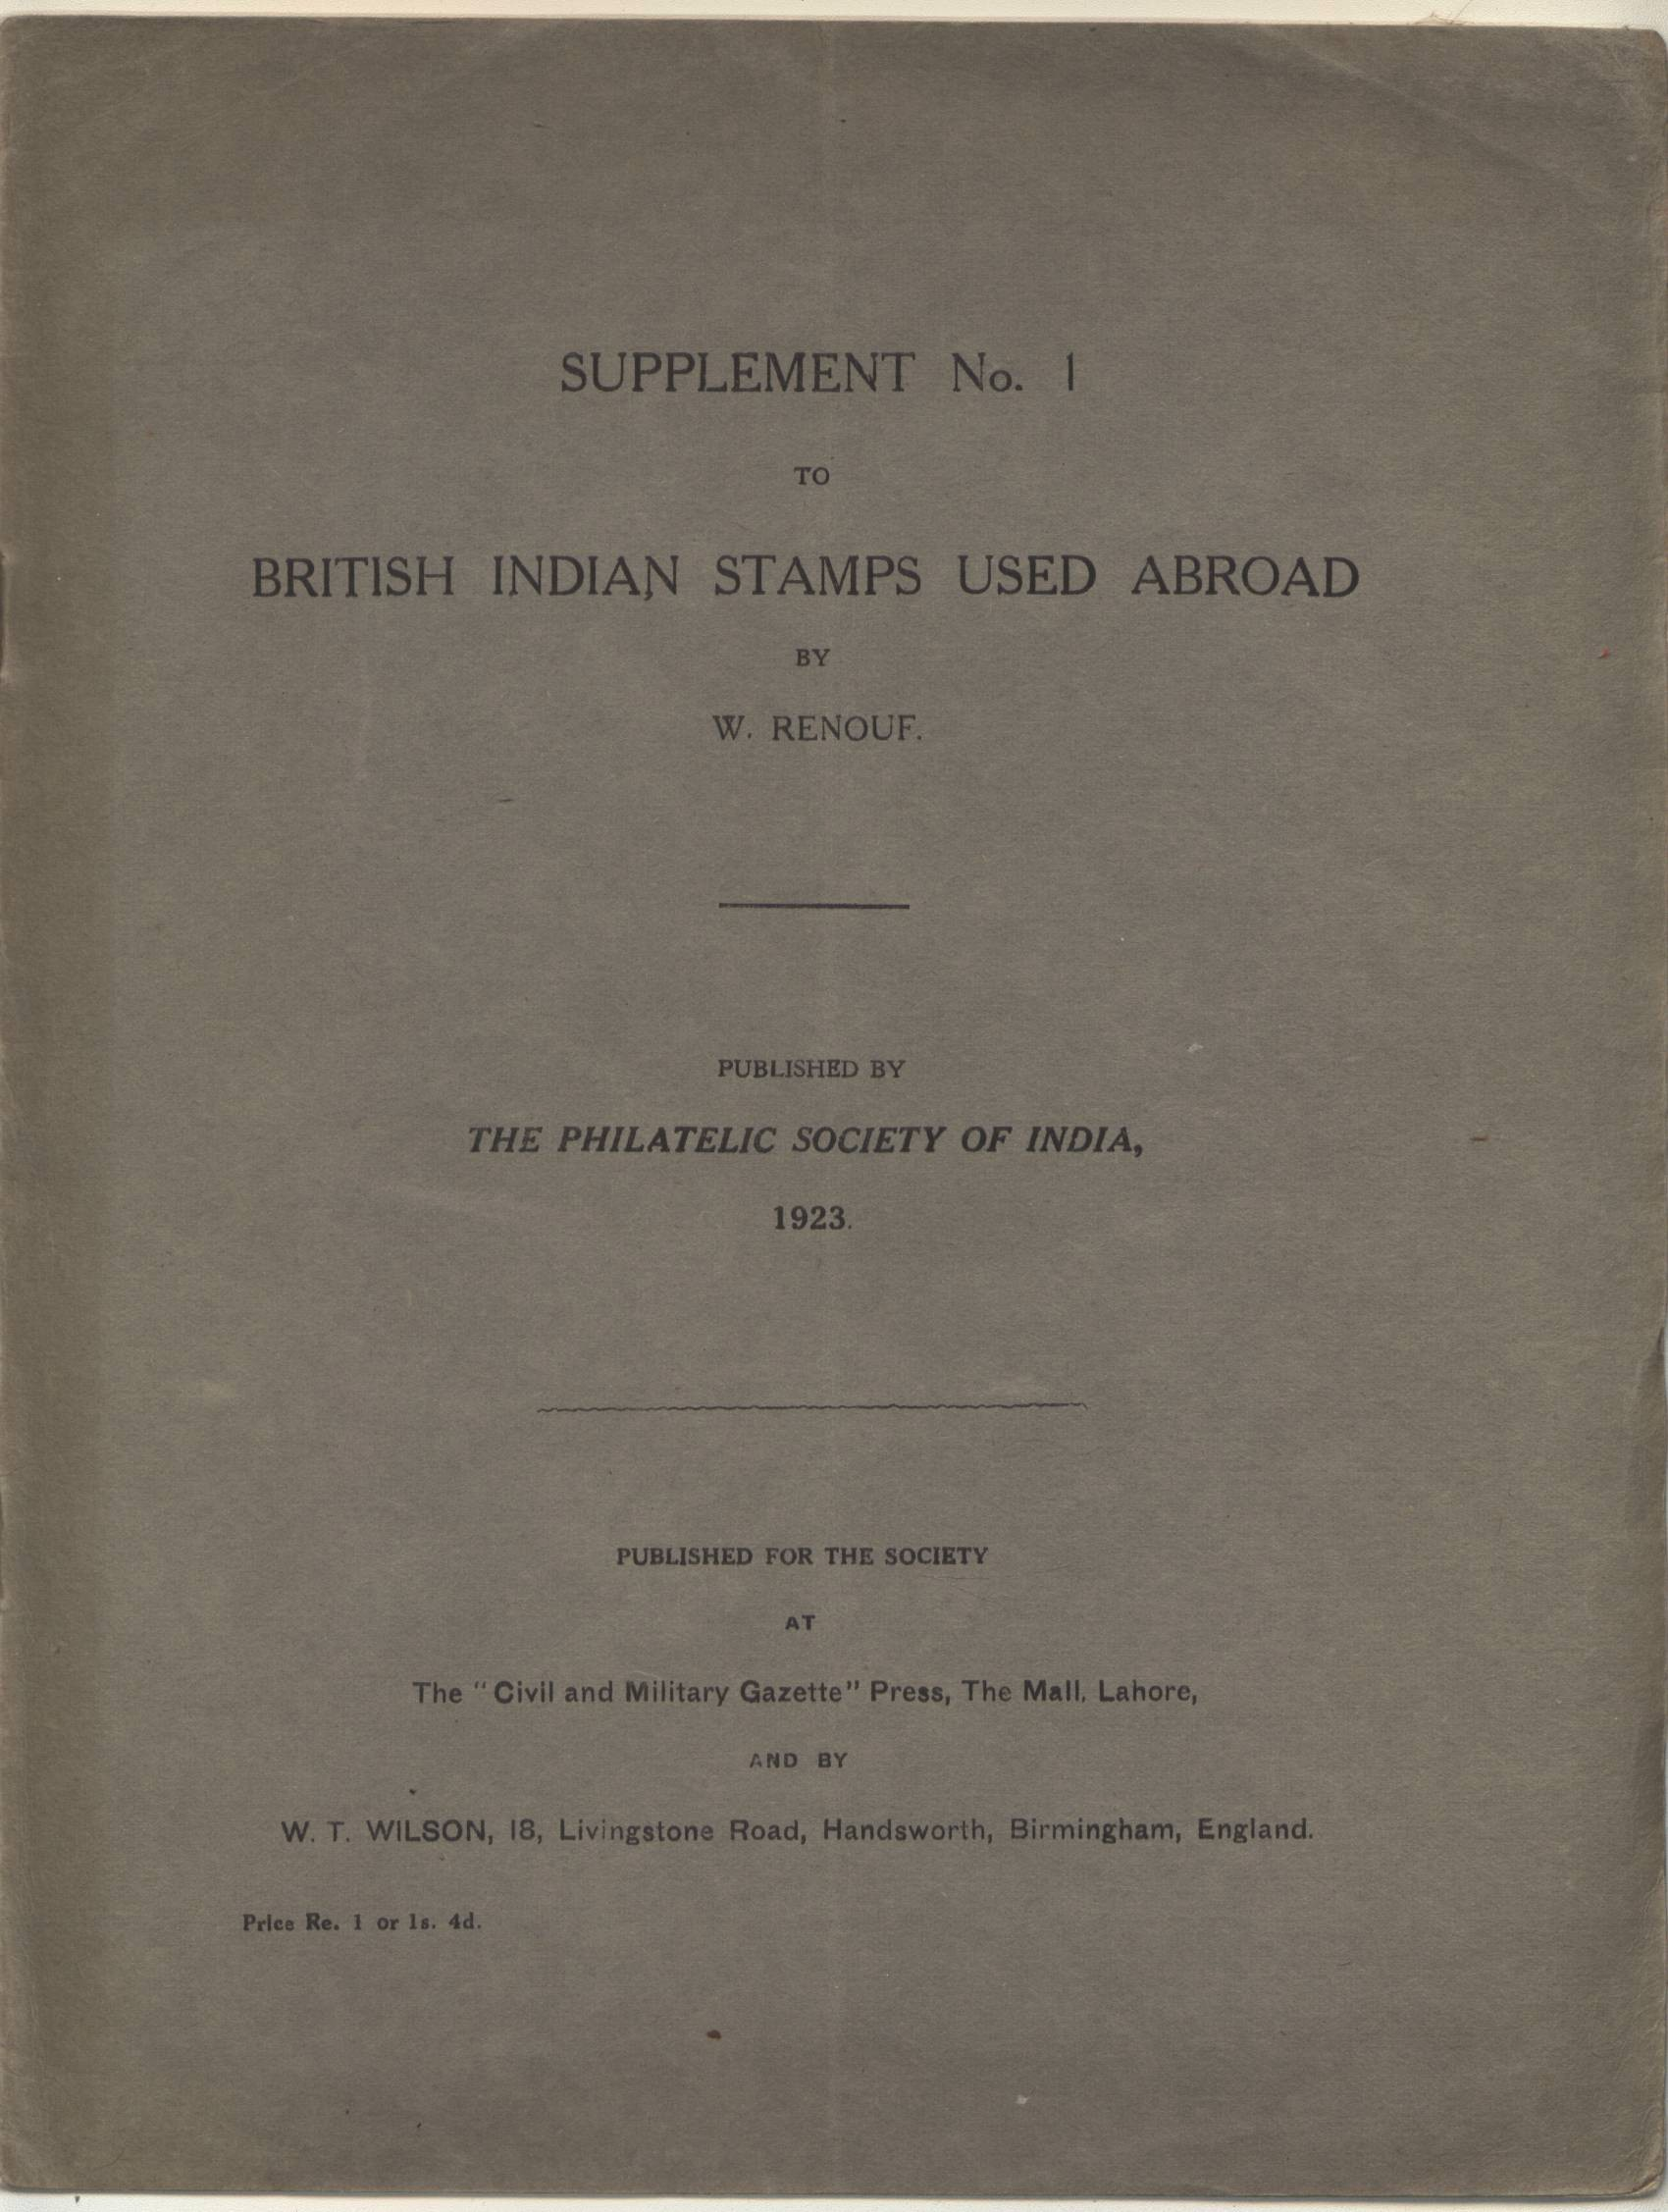 India Used Abroad W. Renouf Supplement